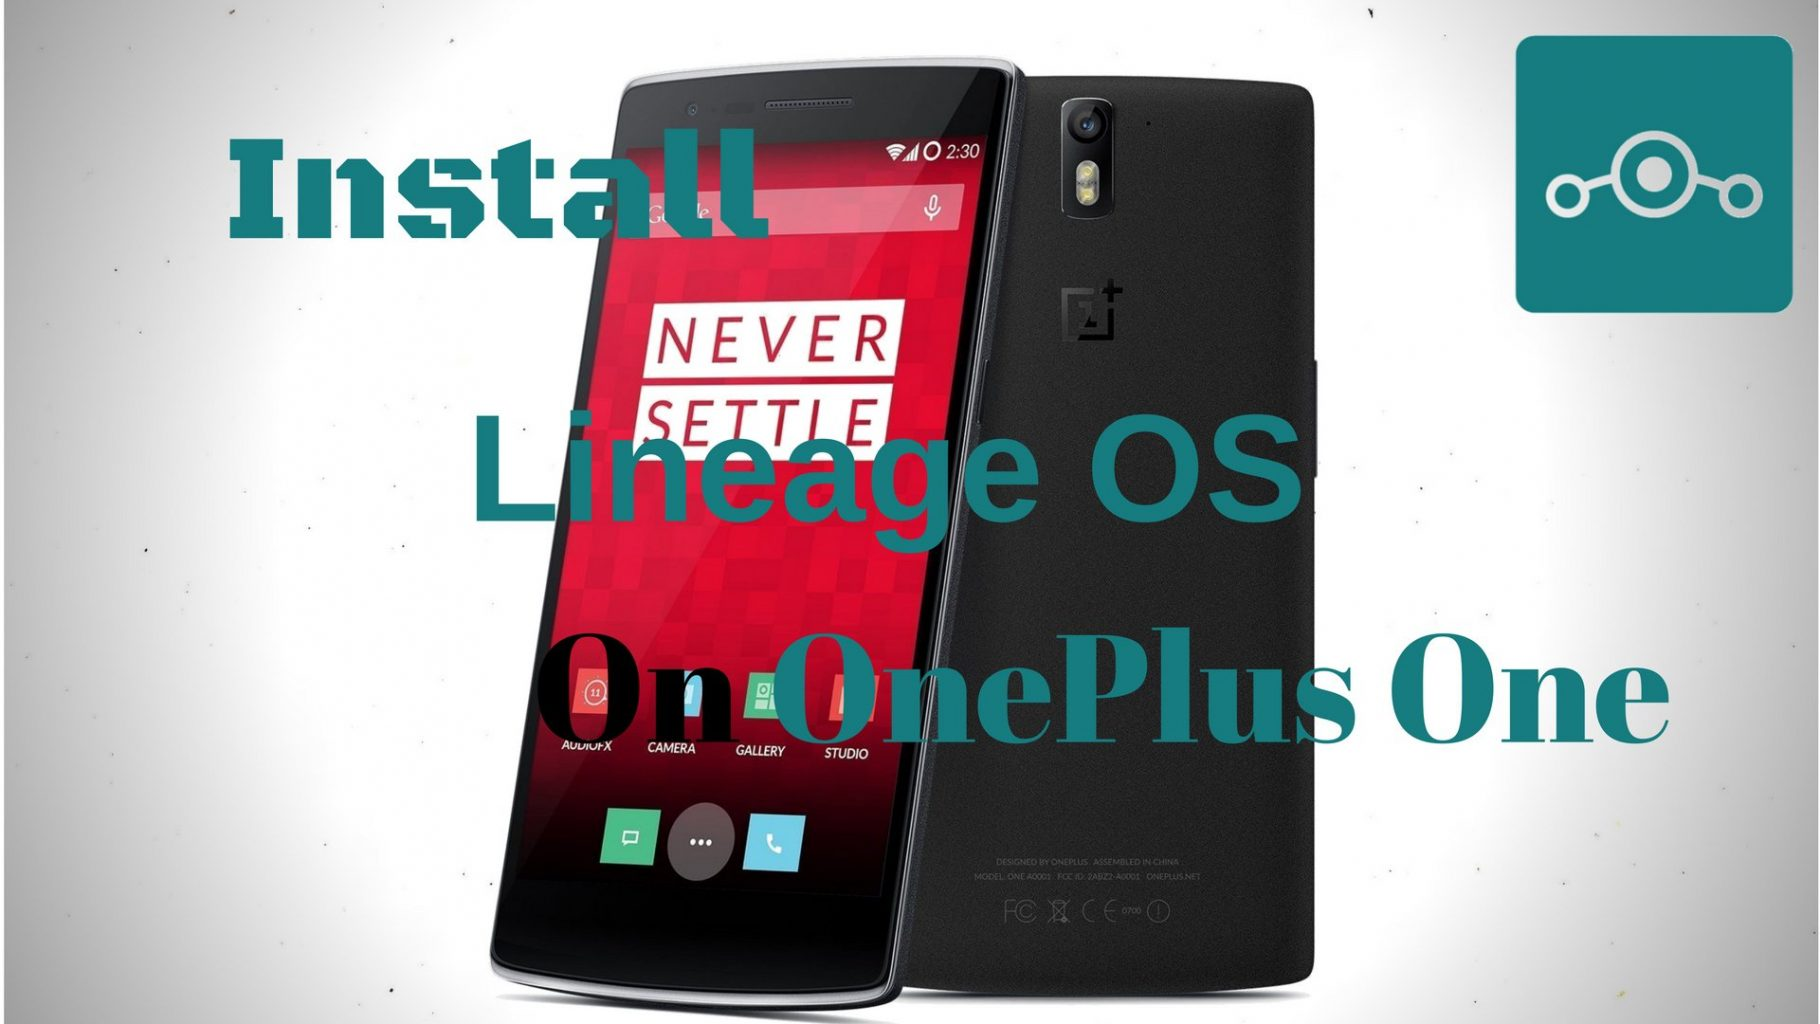 Install Lineage OS 14 1 OnePlus One (Bacon) - Hacks & Geeks